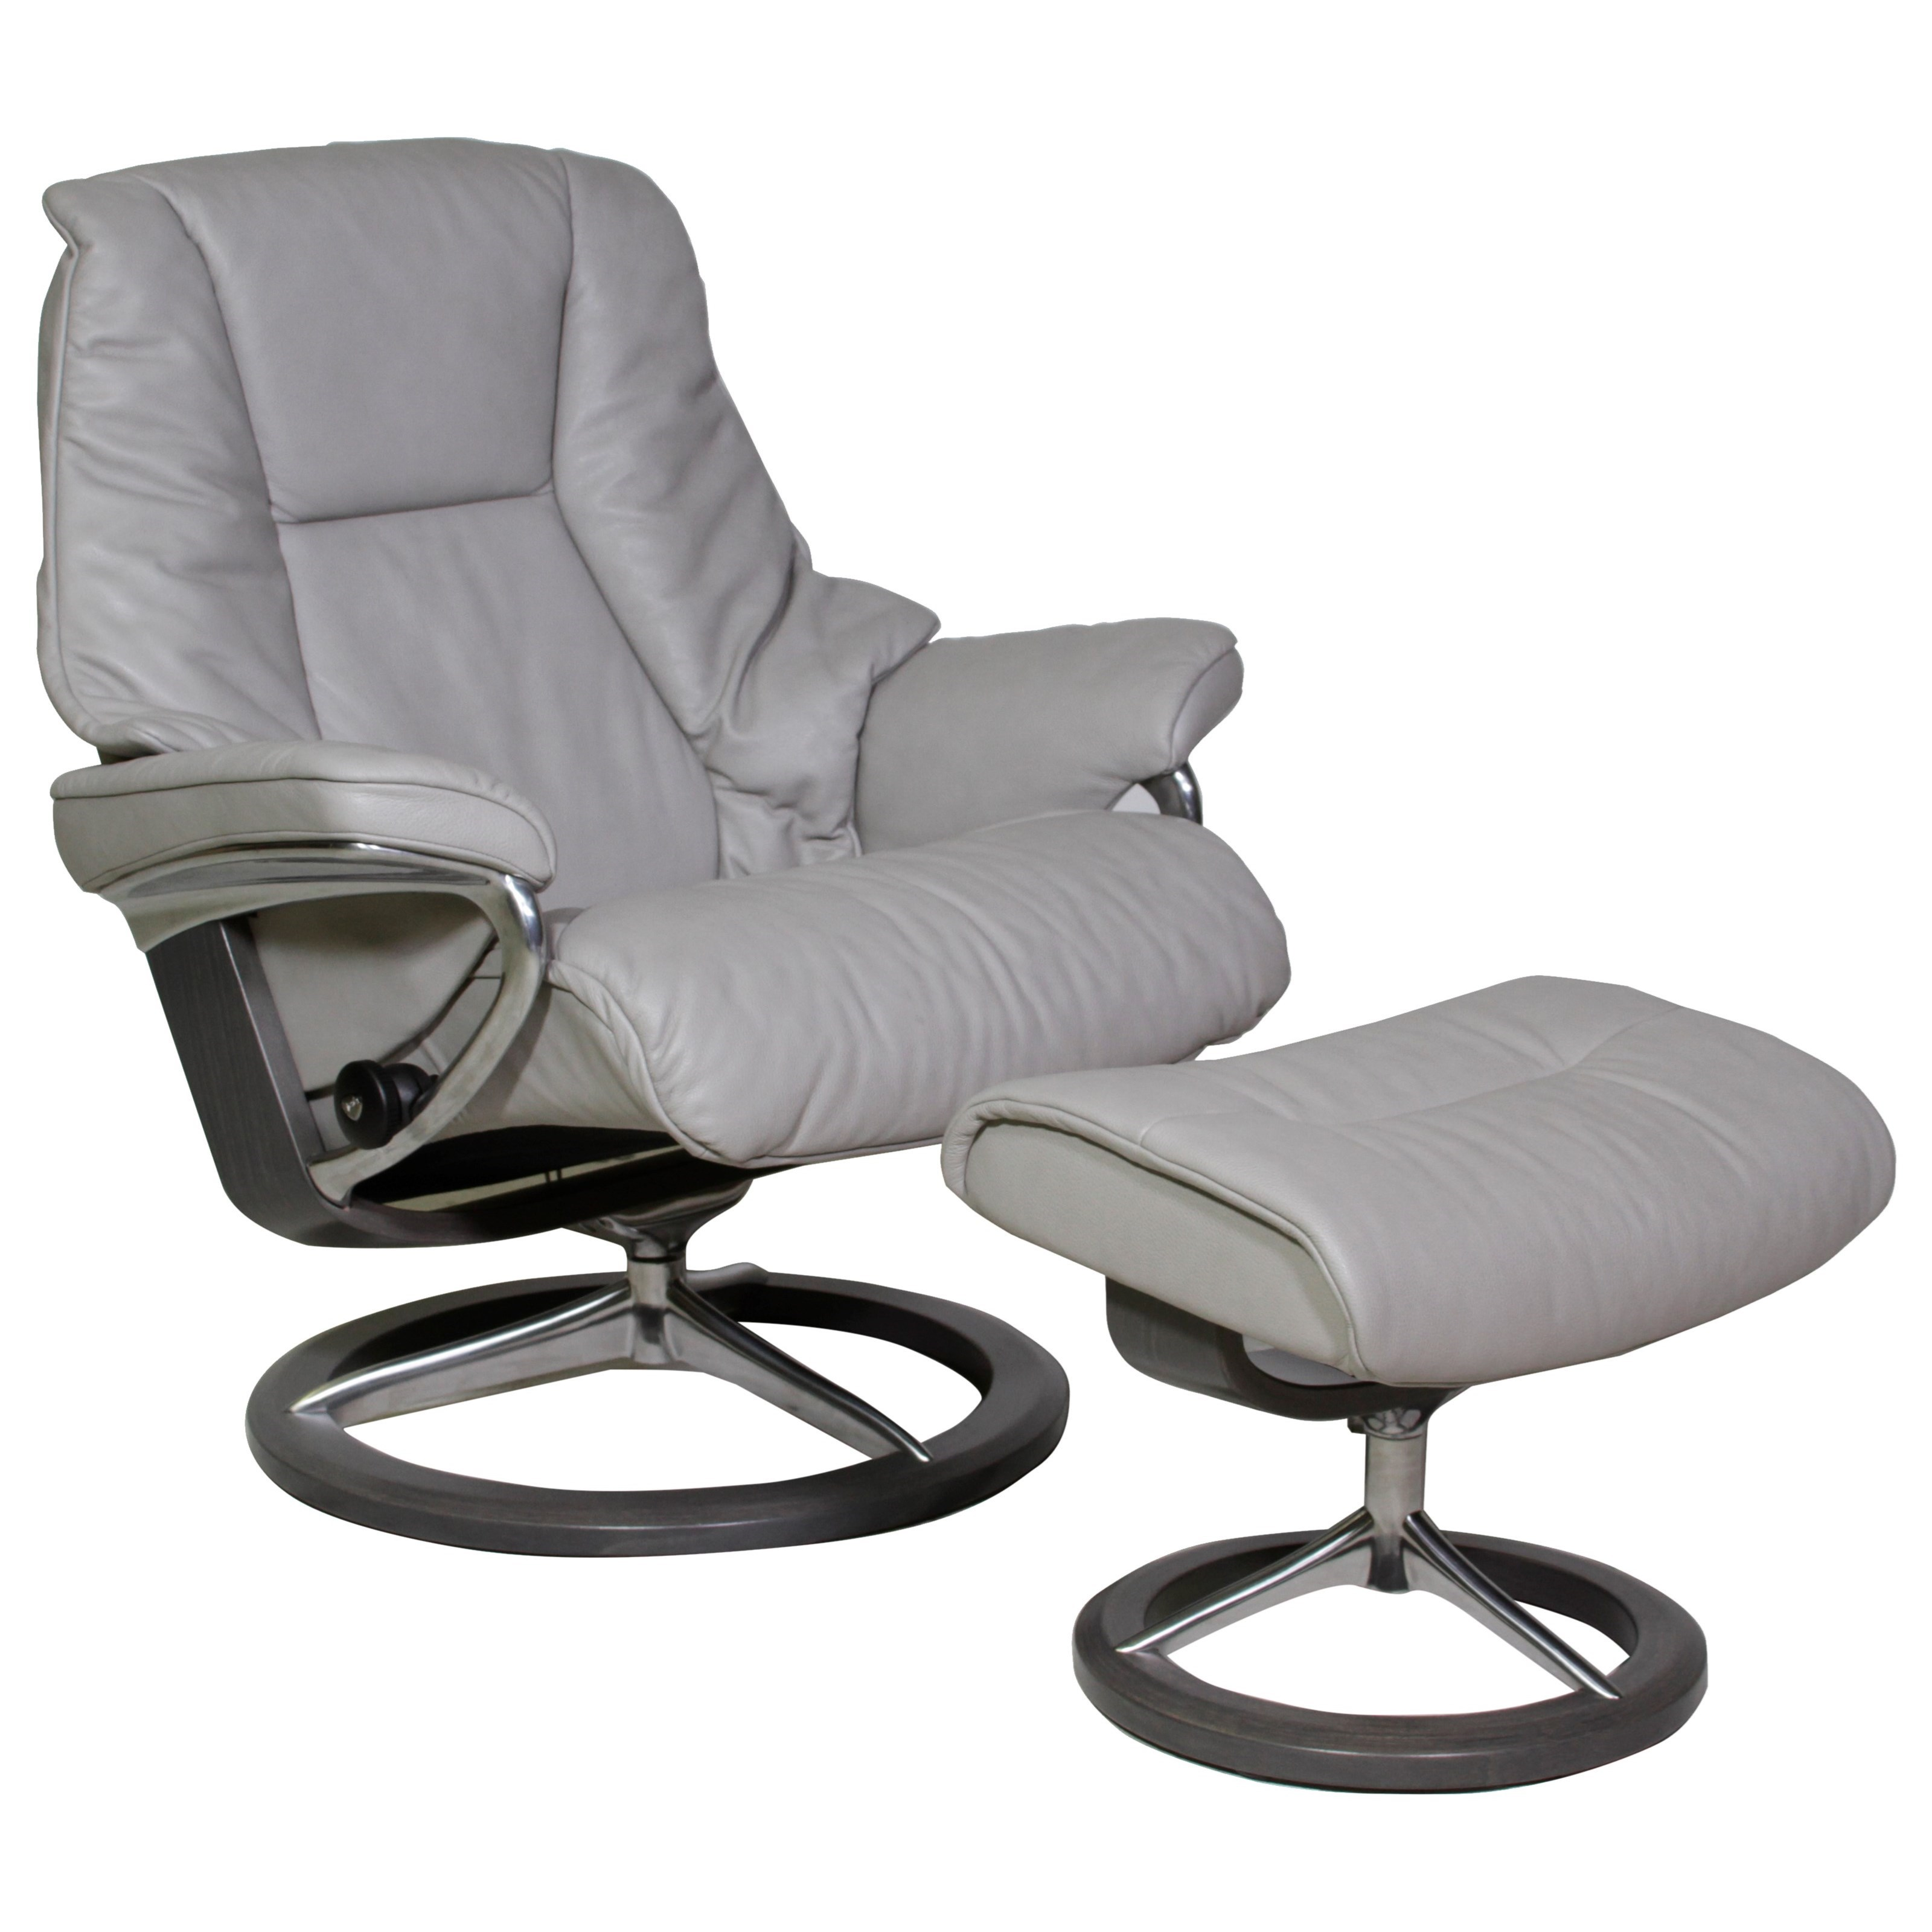 Live Large Chair & Ottoman with Signature Base by Stressless at Virginia Furniture Market